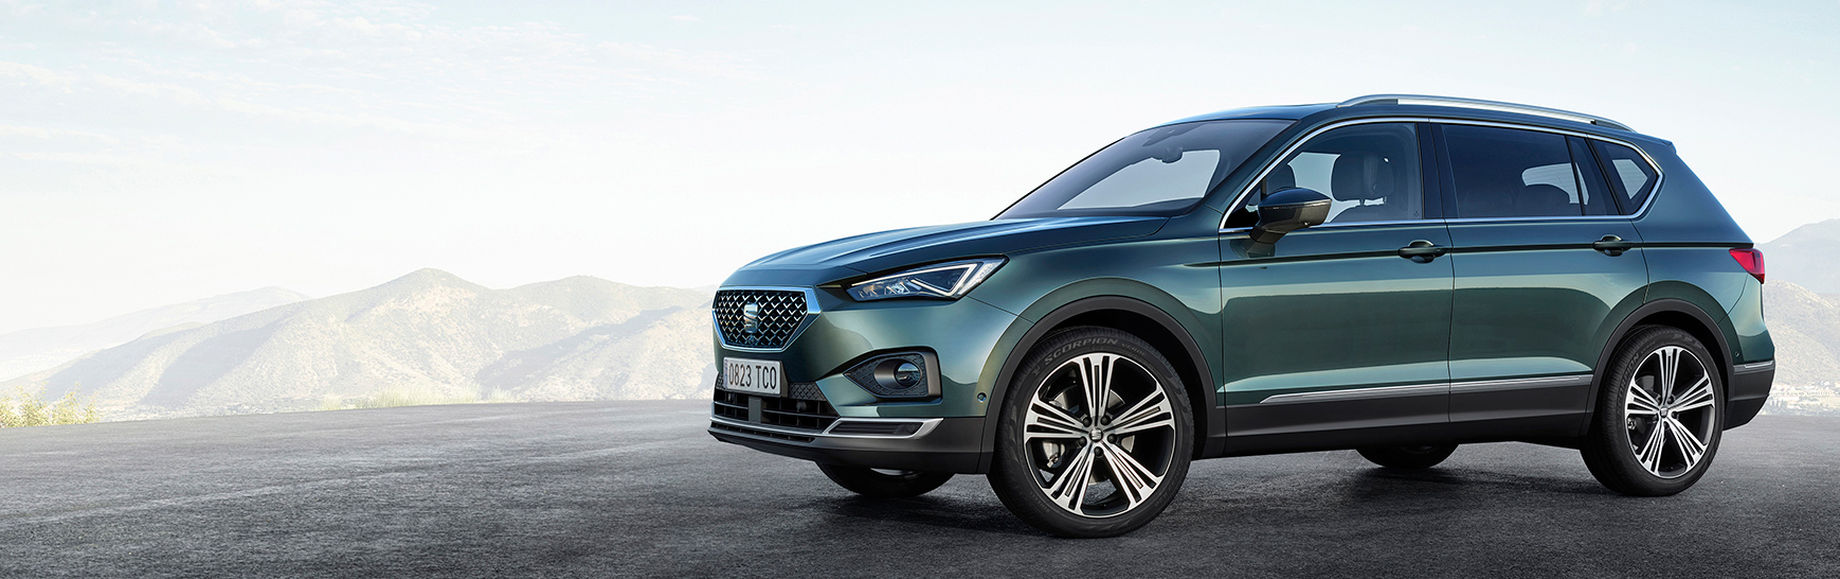 SEAT goes big with the New SEAT Tarraco 001 HD